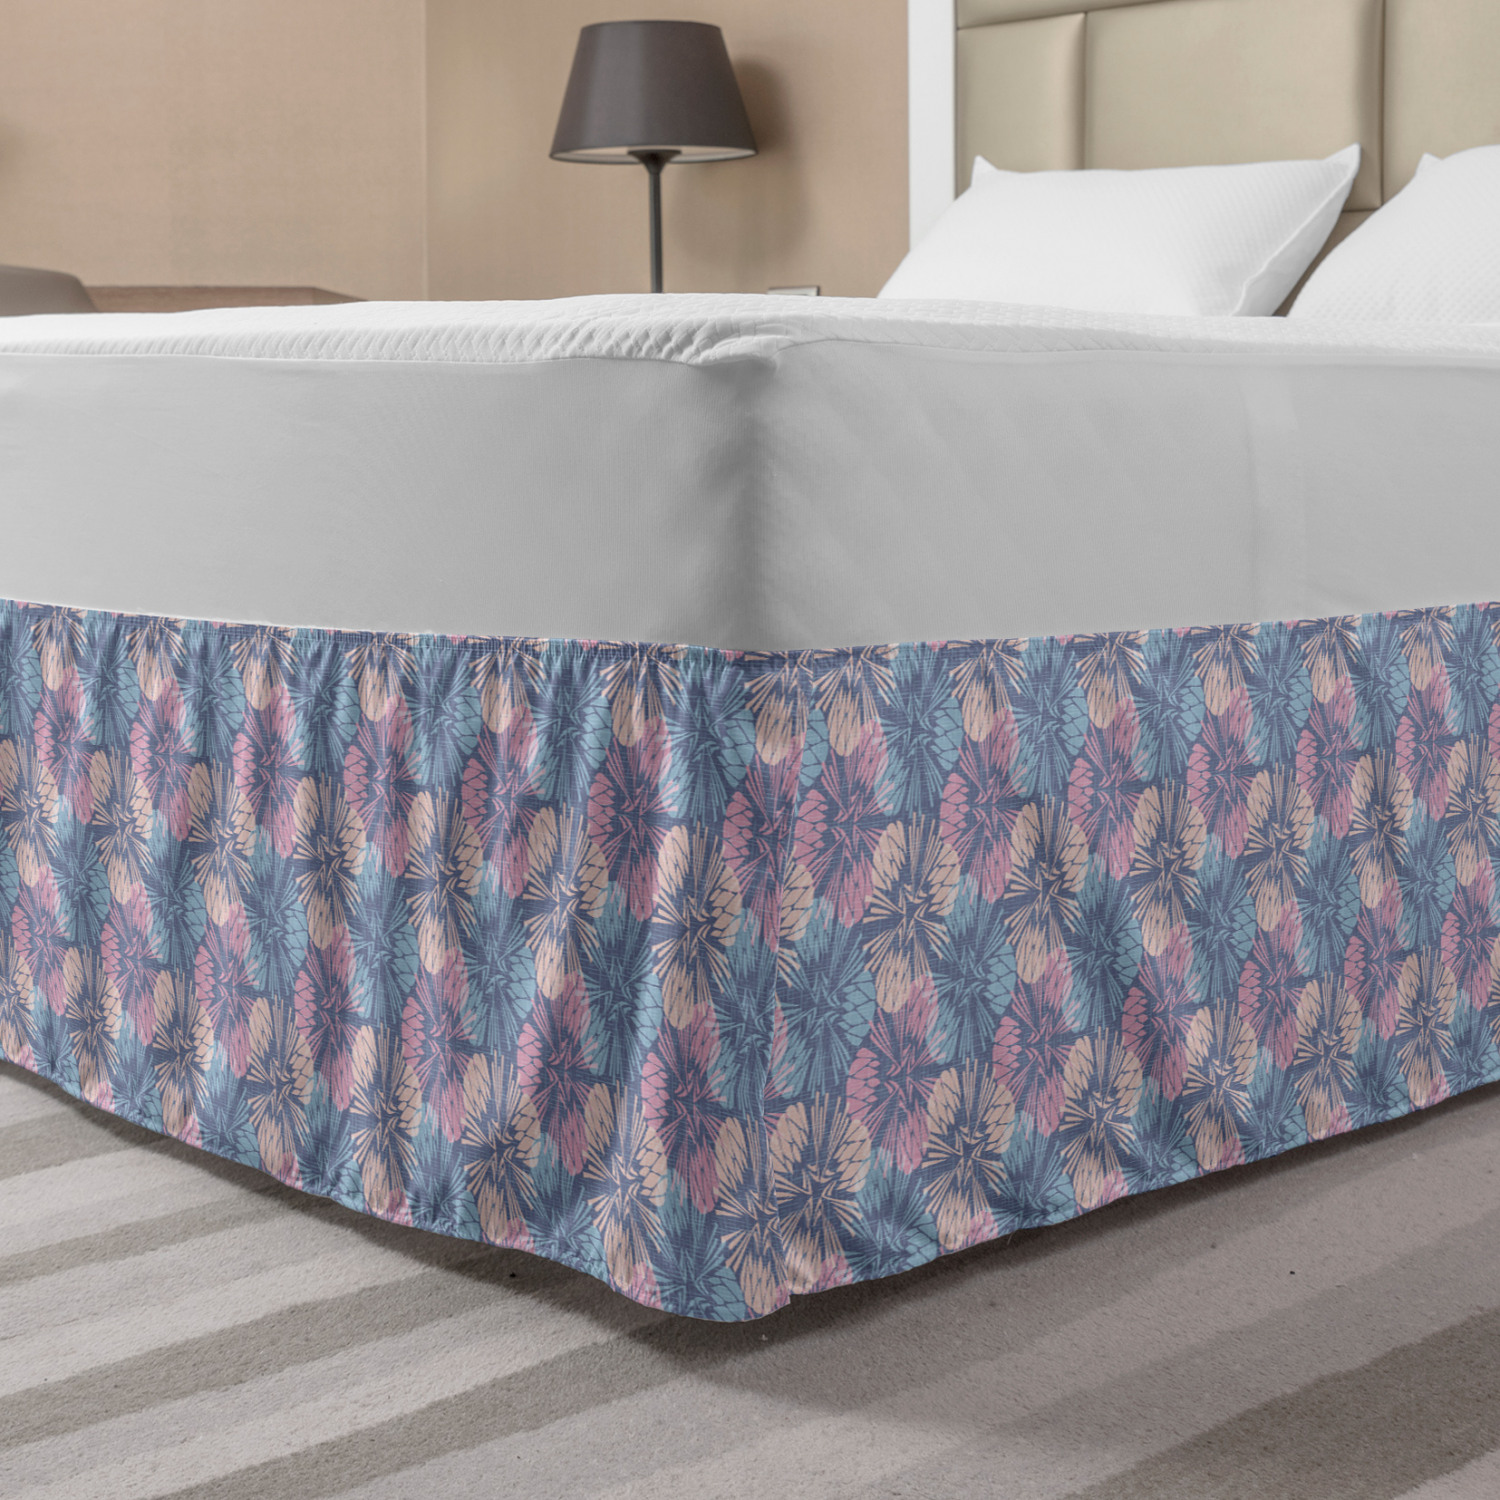 Flower Bed Skirt Abstract Colorful Dandelion Pattern With Striped Background Burlap Inspired Design Elastic Bedskirt Dust Ruffle Wrap Around For Bedding Decor 4 Sizes Multicolor By Ambesonne Walmart Com Walmart Com